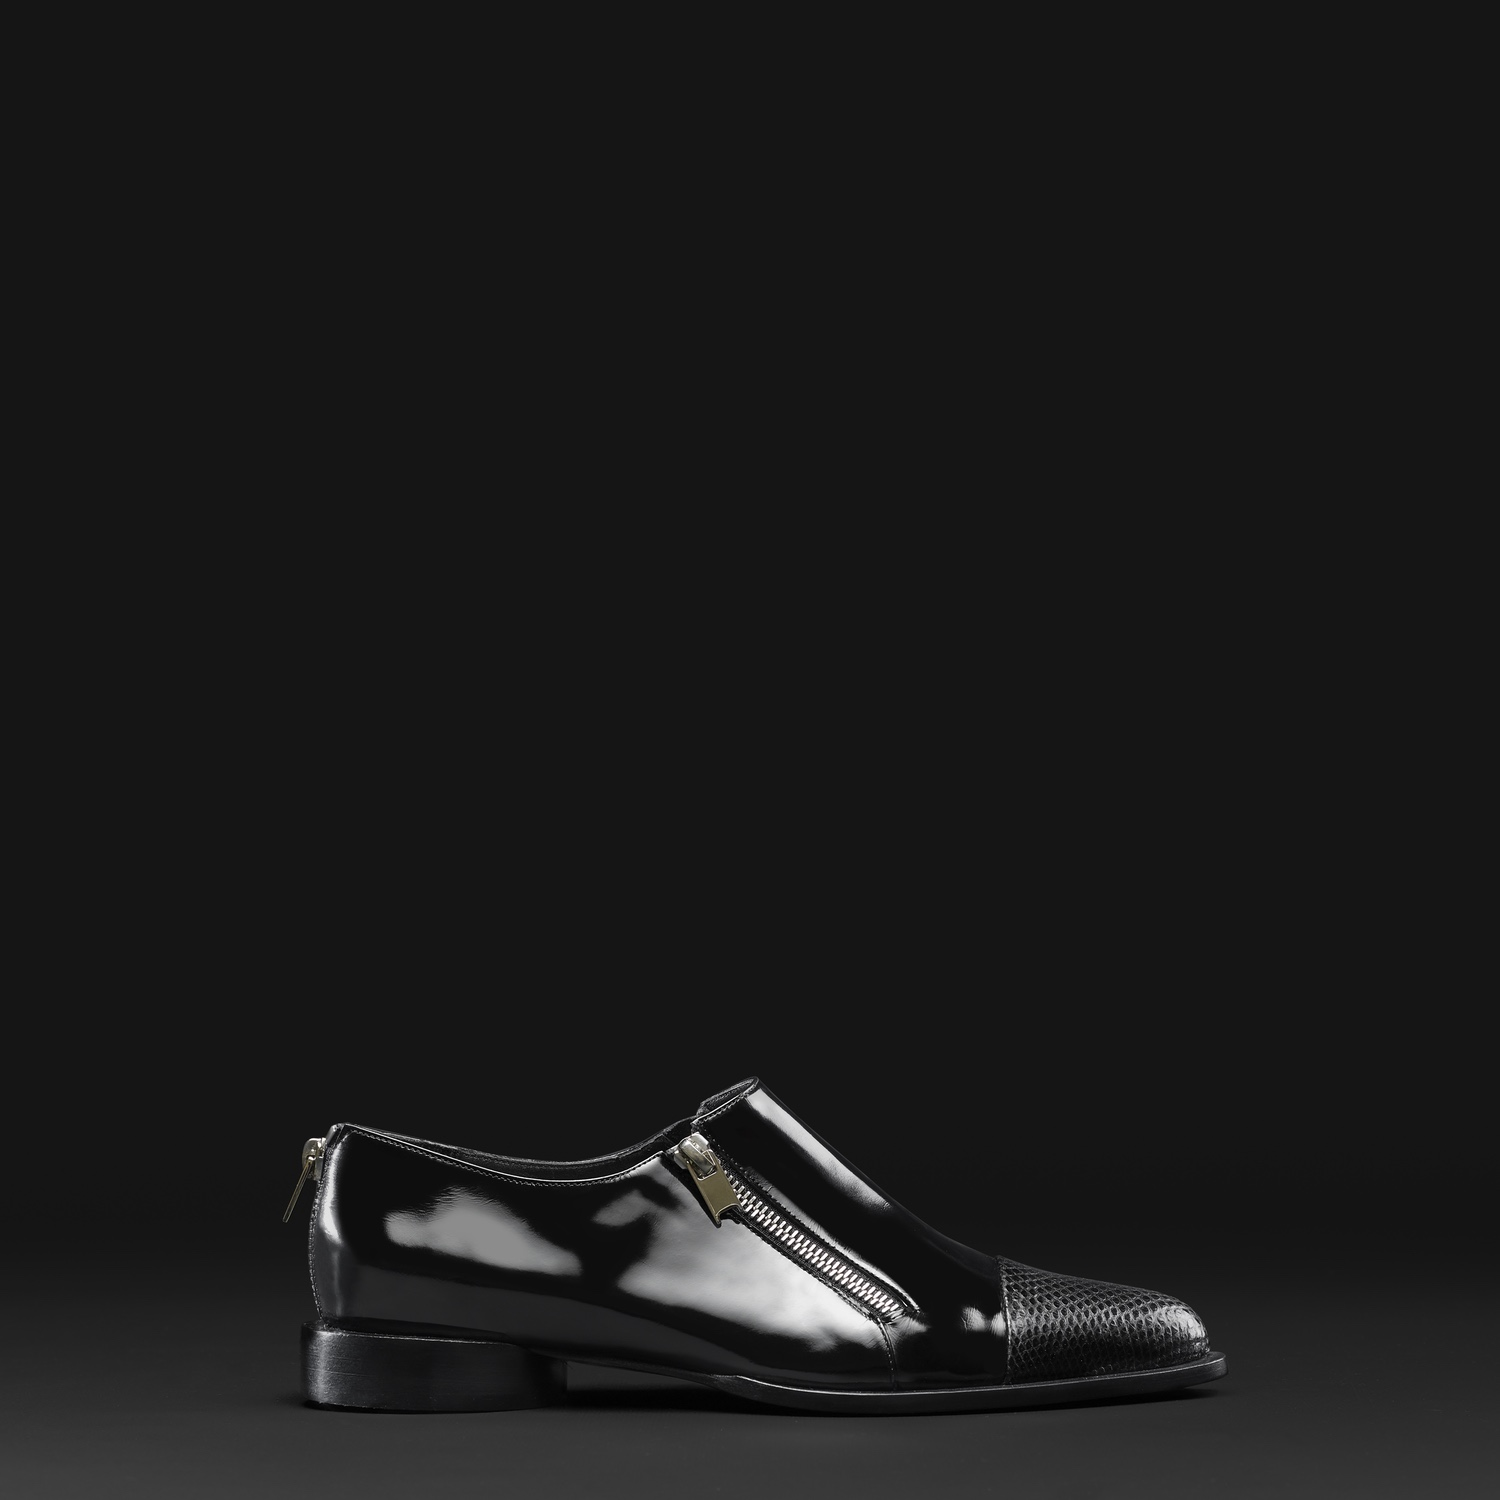 ALAINTONDOWSKI_FALLWINTER2015_SHOES_AT002-B